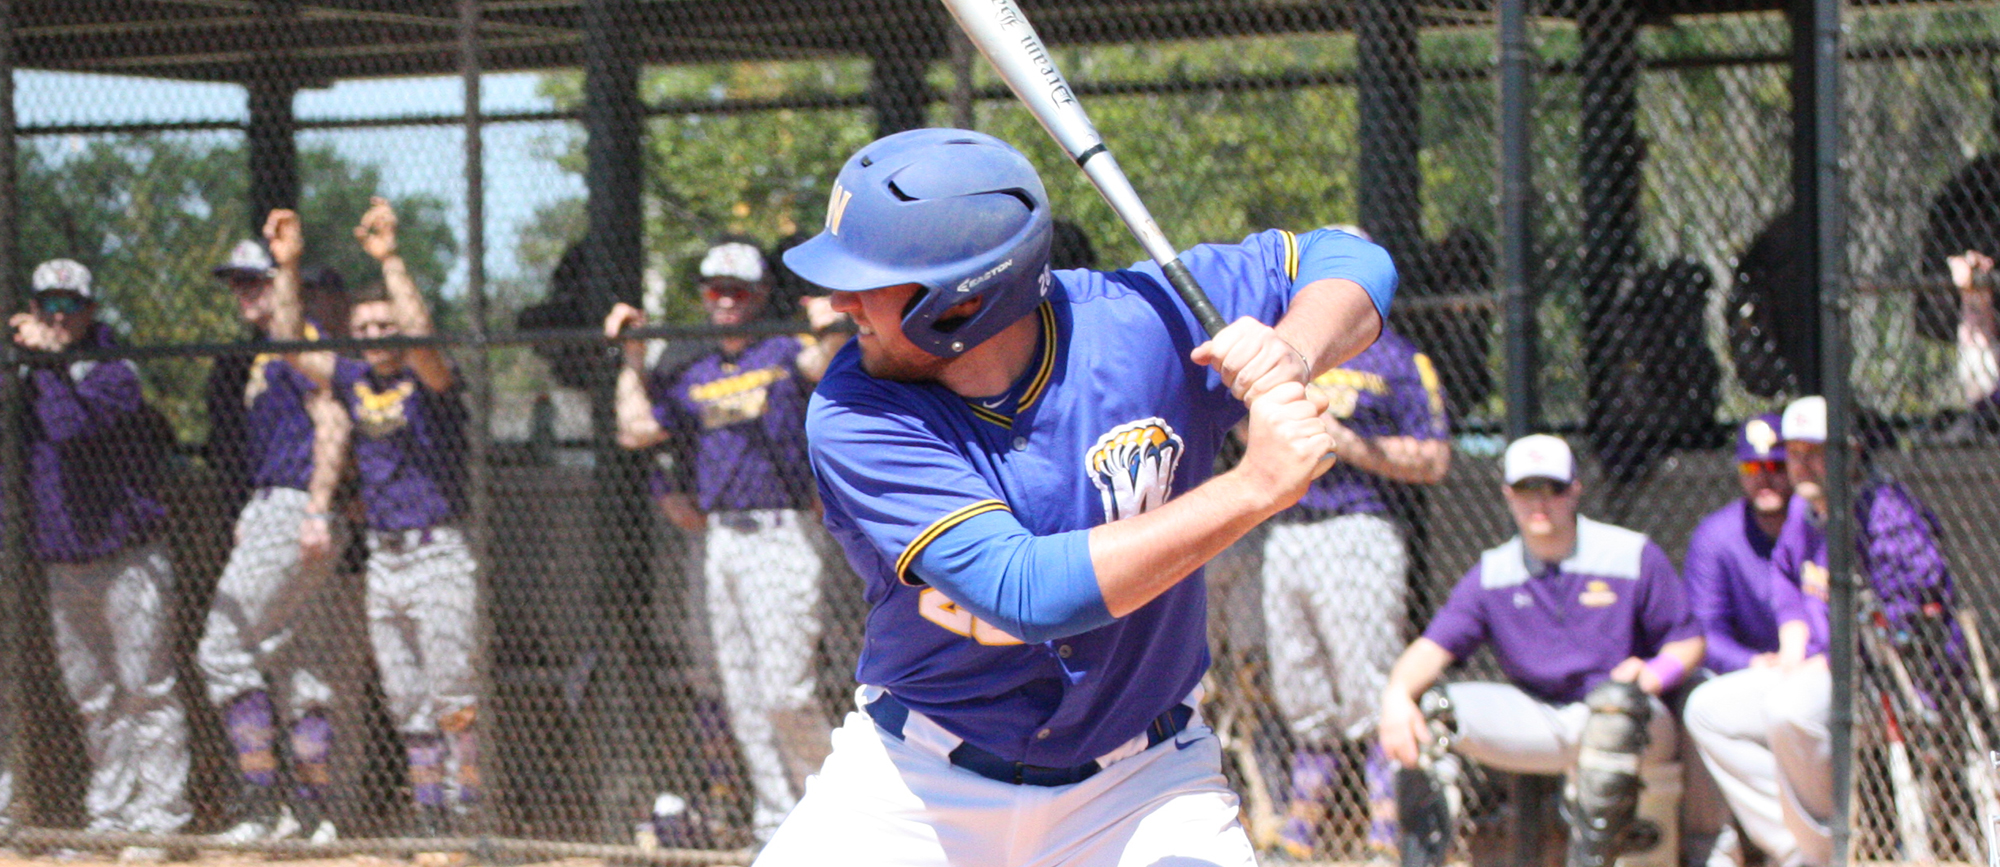 Sophomore Zac Nussbaum recorded one hit in each game as the Golden Bears were swept at Wentworth on Sunday. (Photo by Jeff Rosenblatt)